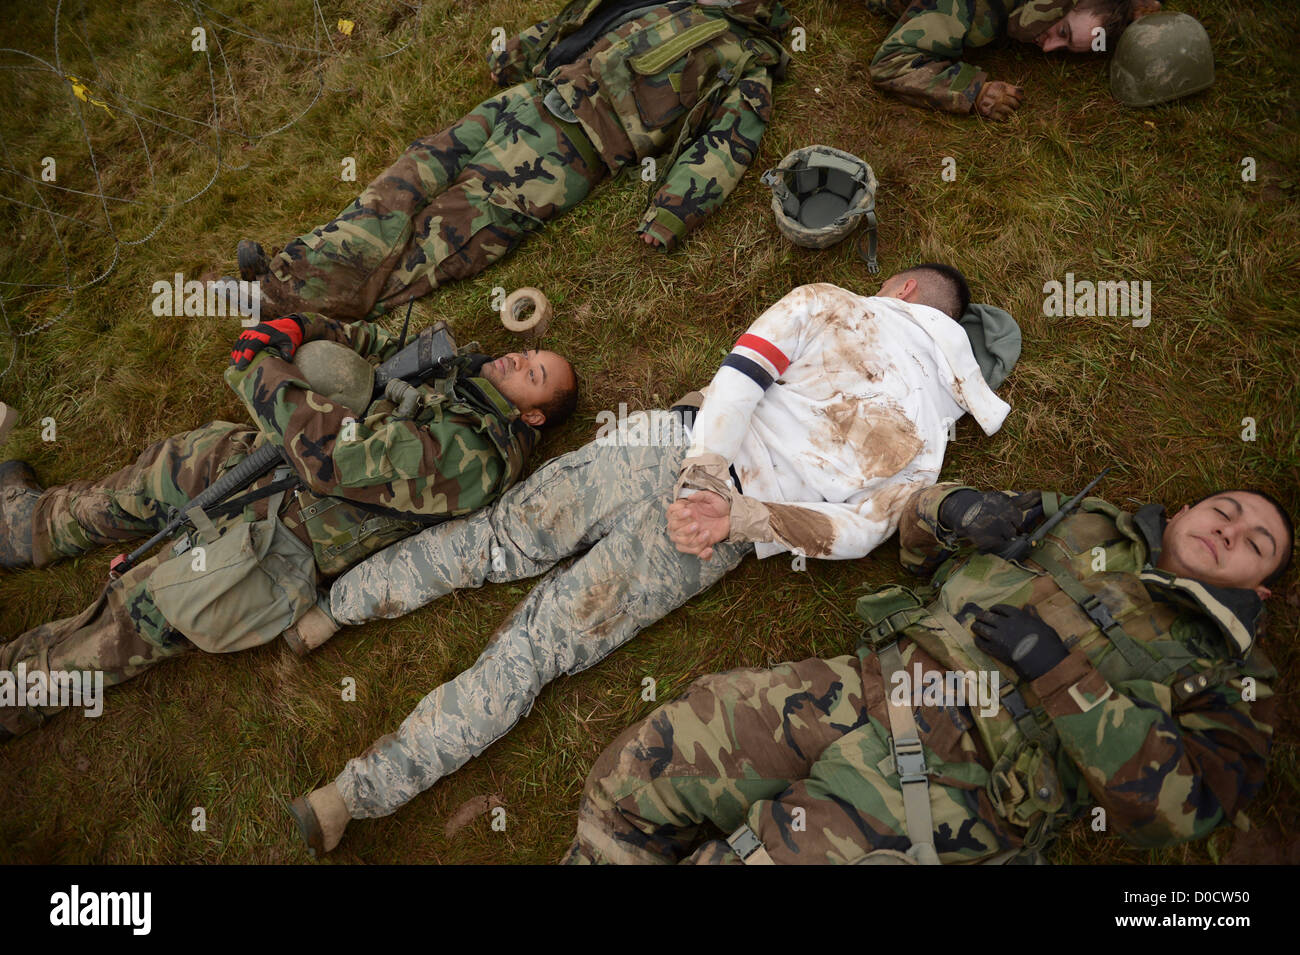 Casualties from a simulated detonated improvised explosive device lay on the ground inside the perimeter of the - Stock Image